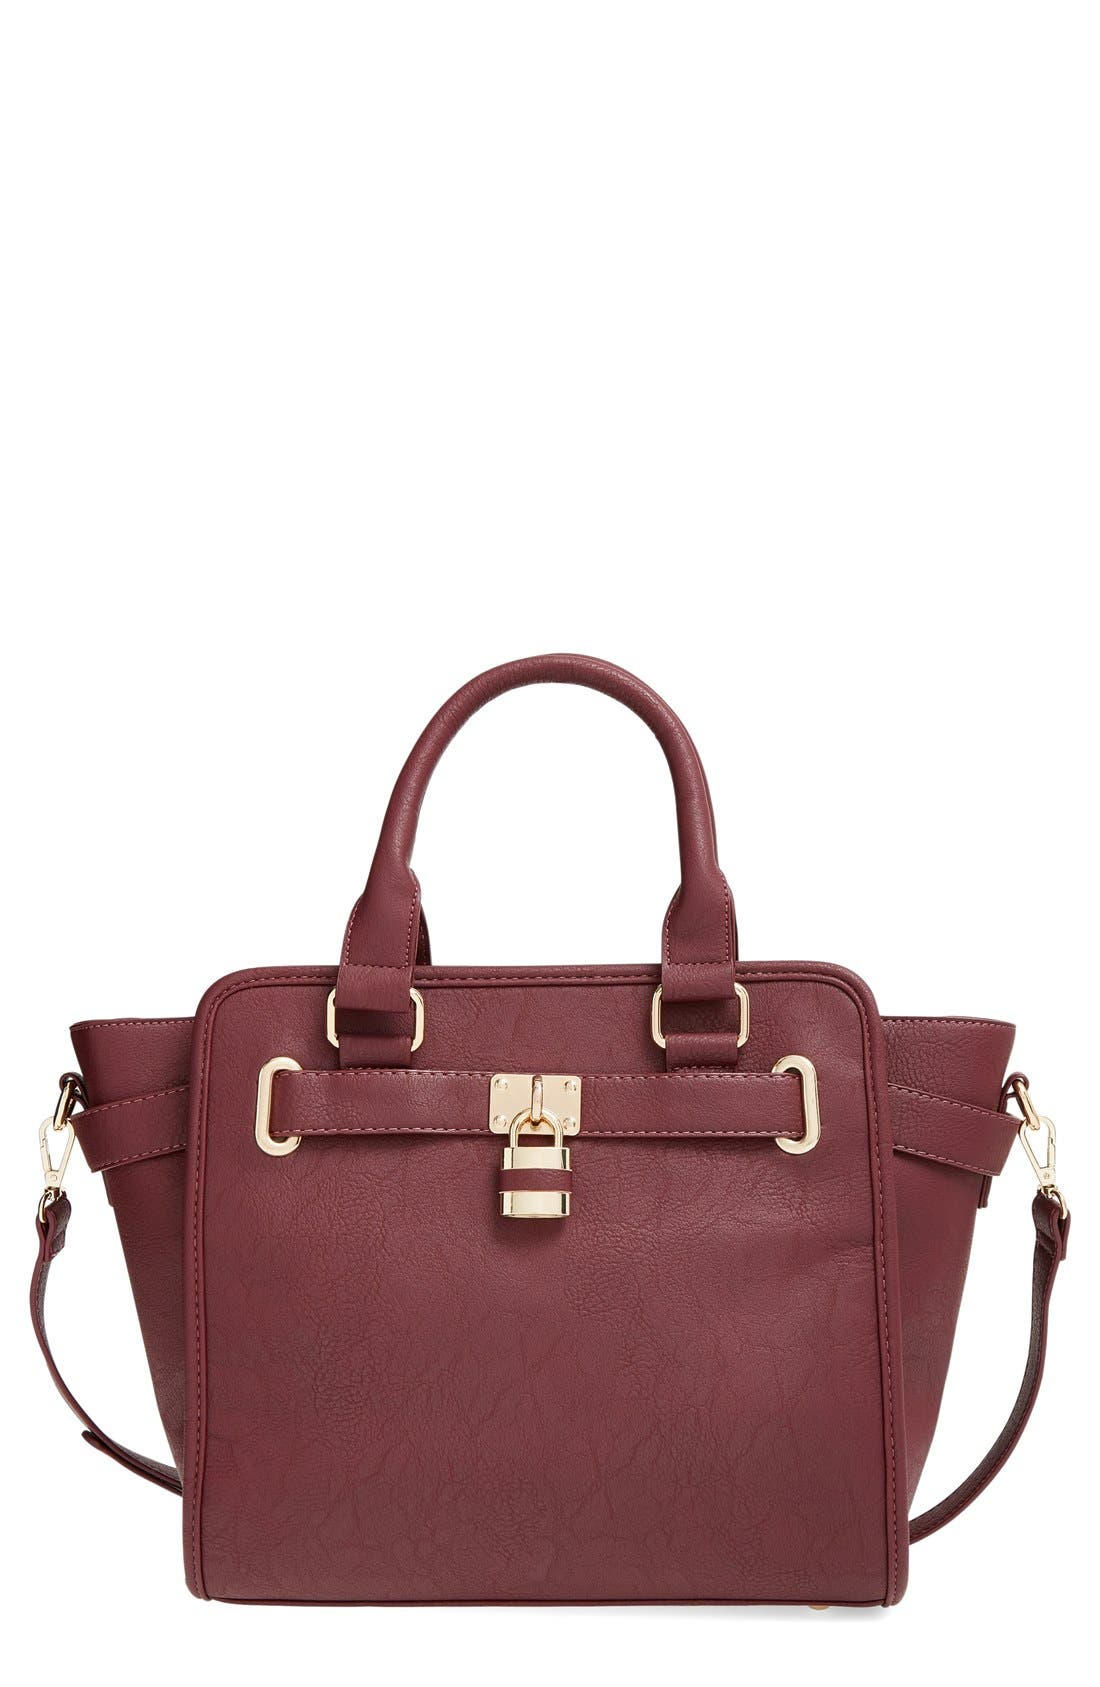 Main Image - Cesca Faux Leather Crossbody Lock Satchel